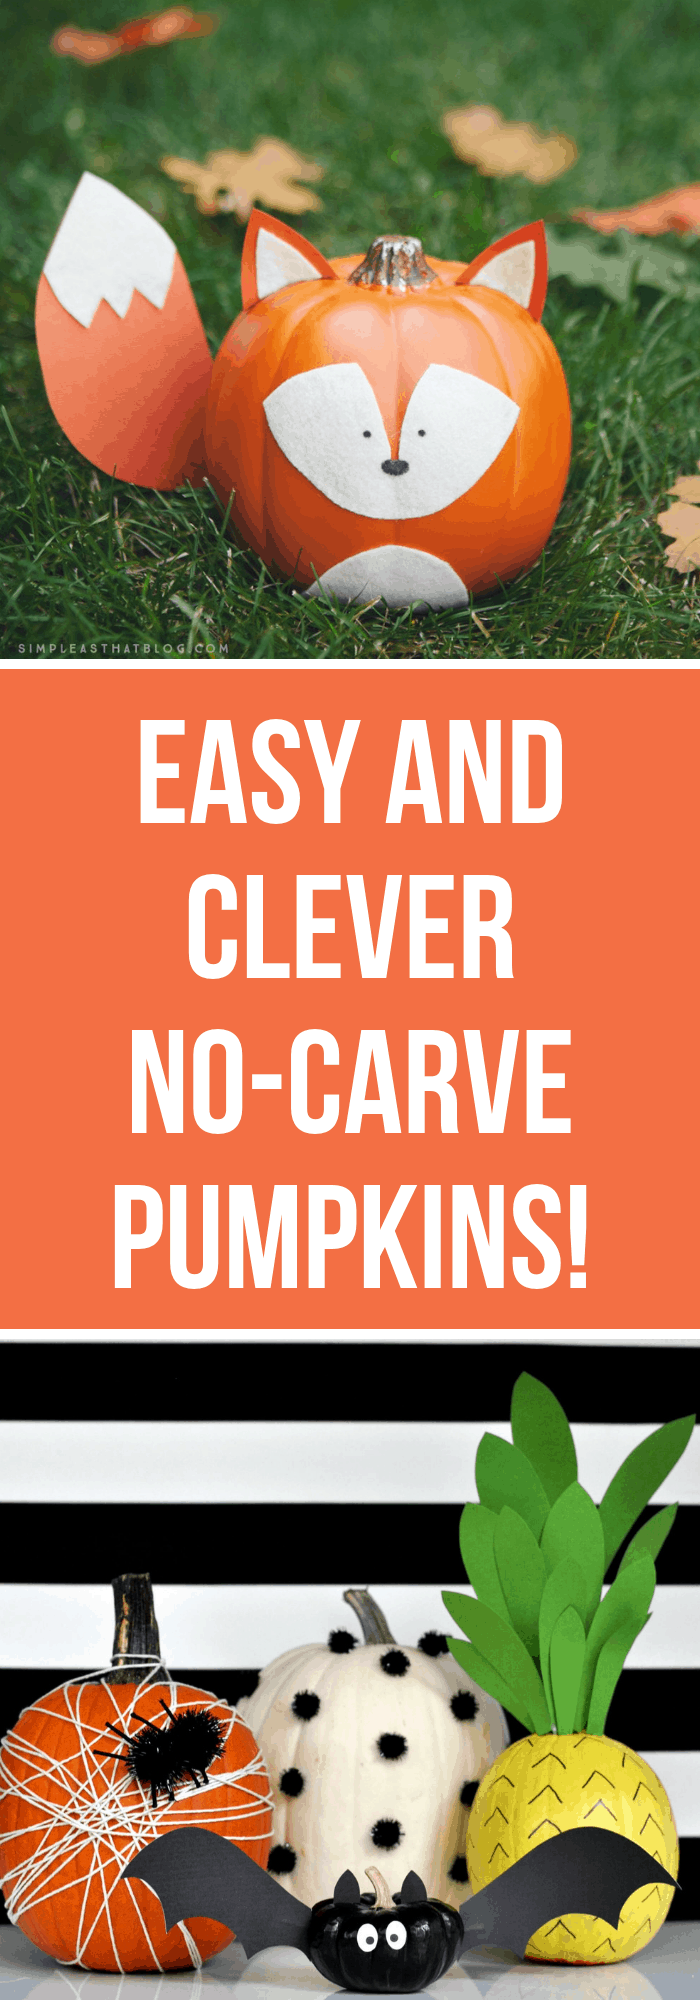 Easy and Clever No-Carve Pumpkins